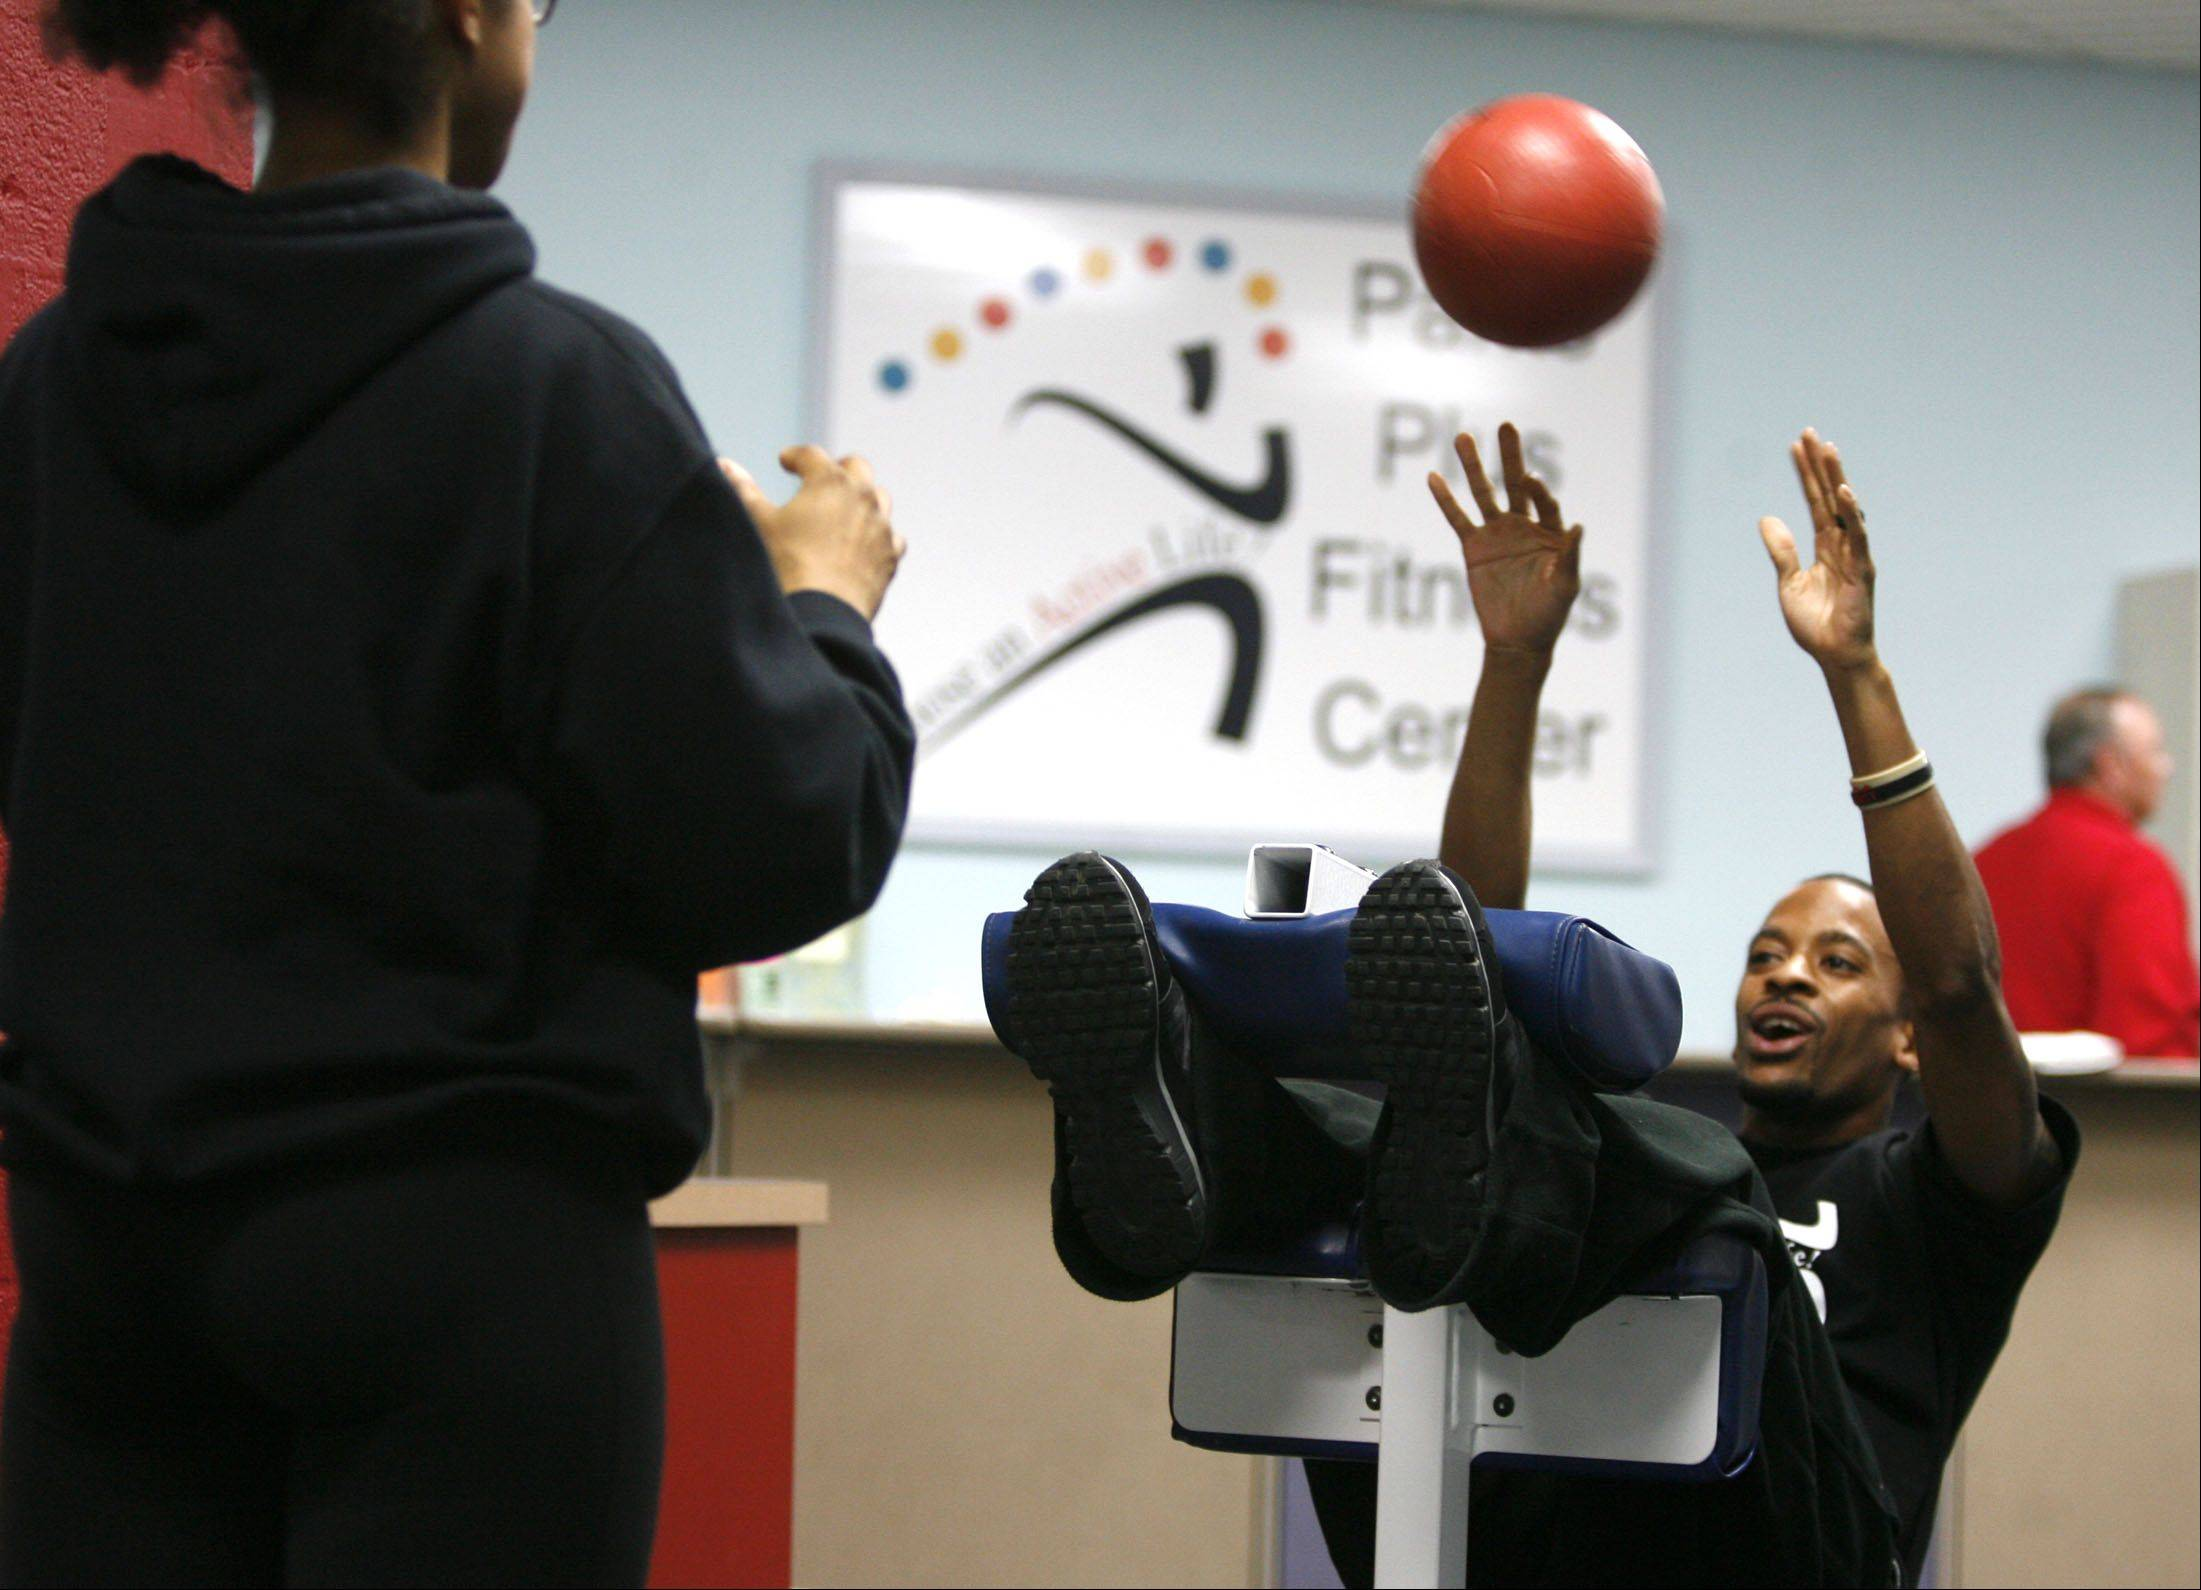 Personal trainer Michelle Artist tosses a medicine ball with trainer Will Lofton, performing an abdominal exercise at the Wheaton Park District's Parks Plus Fitness Center. Free exercise classes and consultations with trainers are available Saturday, Jan. 7 through Monday, Jan. 9.